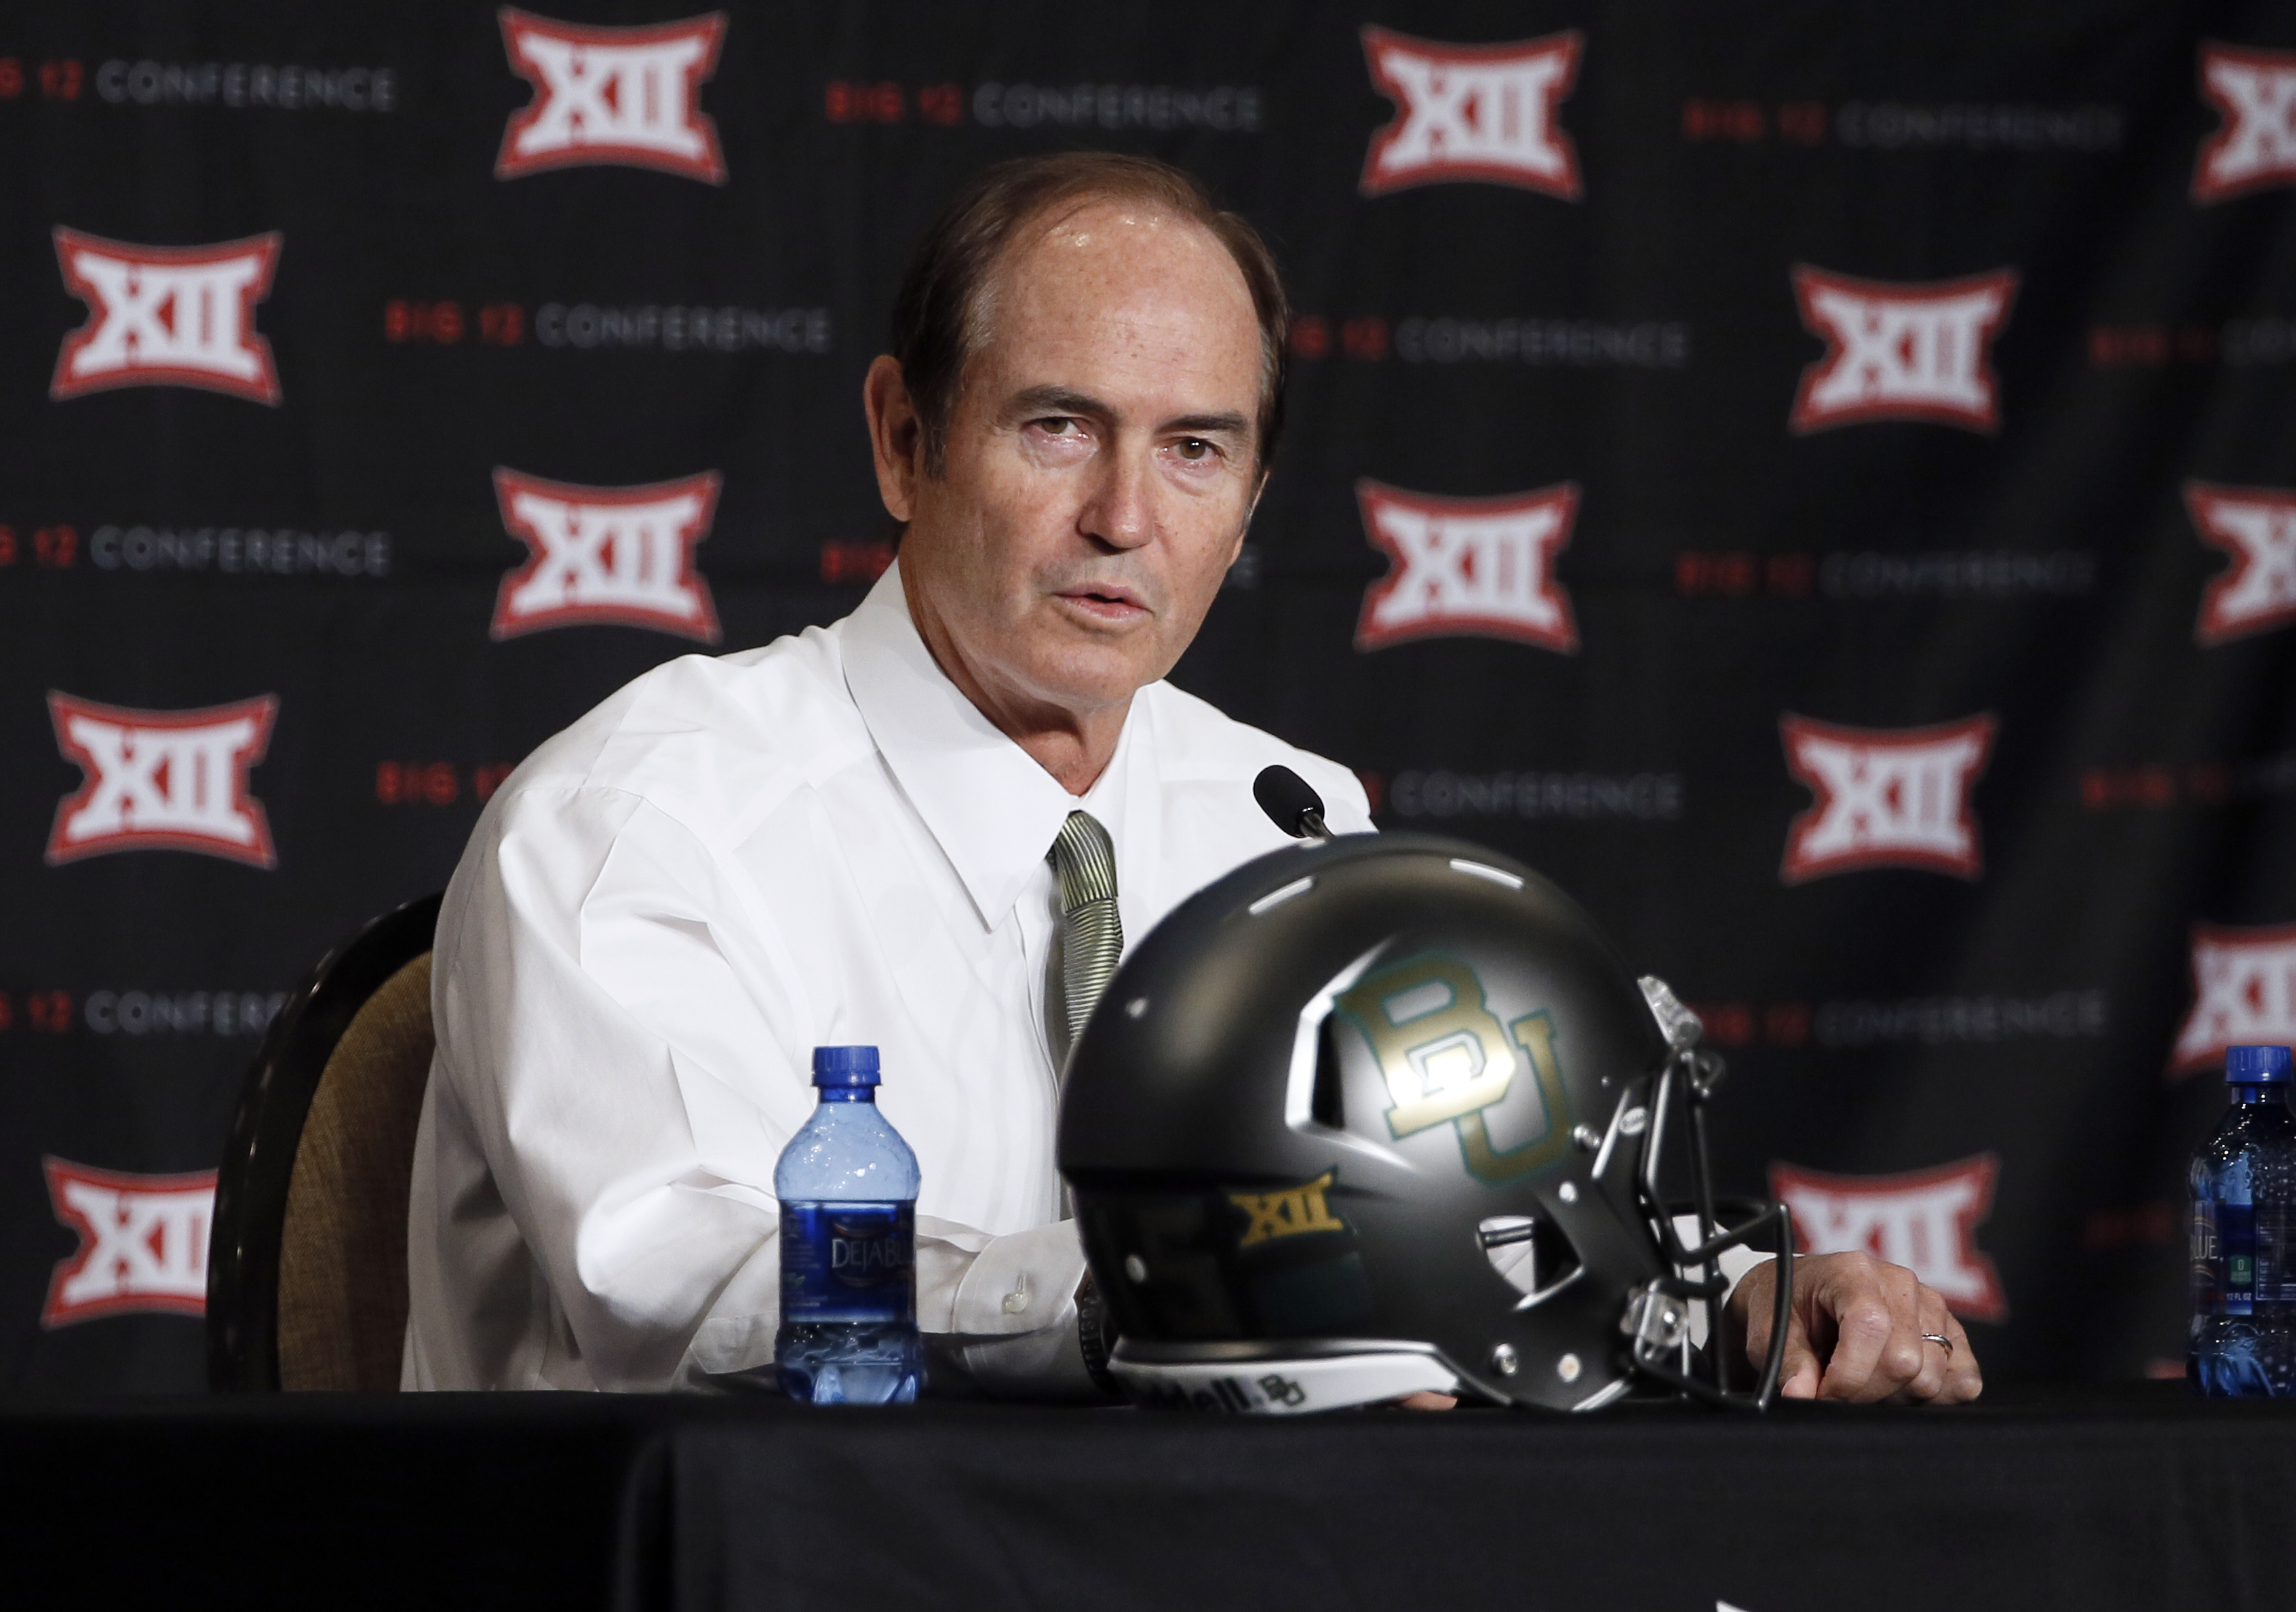 FILE - In this July 21, 2015, file photo, Baylor head coach Art Briles addresses attendees at the Big 12 Conference Football Media Days in Dallas. TCU coach gary Patterson and Baylor coach Art Briles know a nearly-sure-fire way for their teams, and the Bi